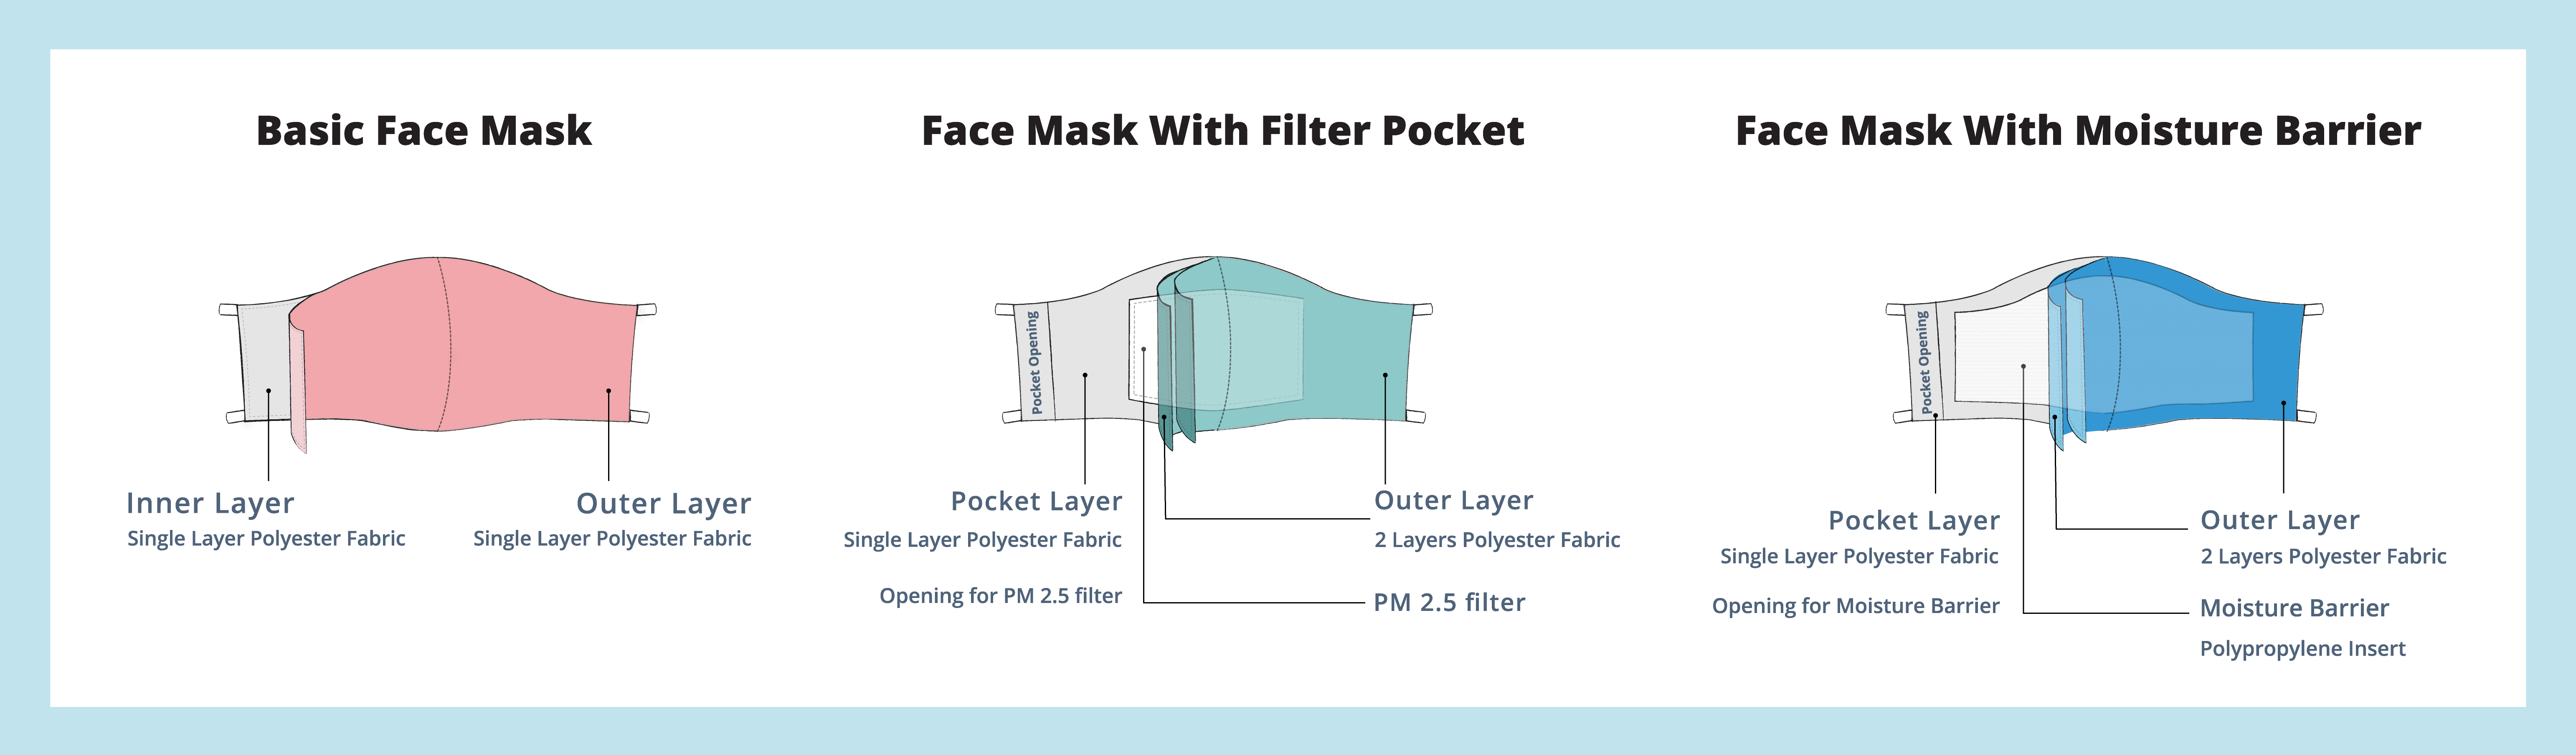 Face Masks With Filters